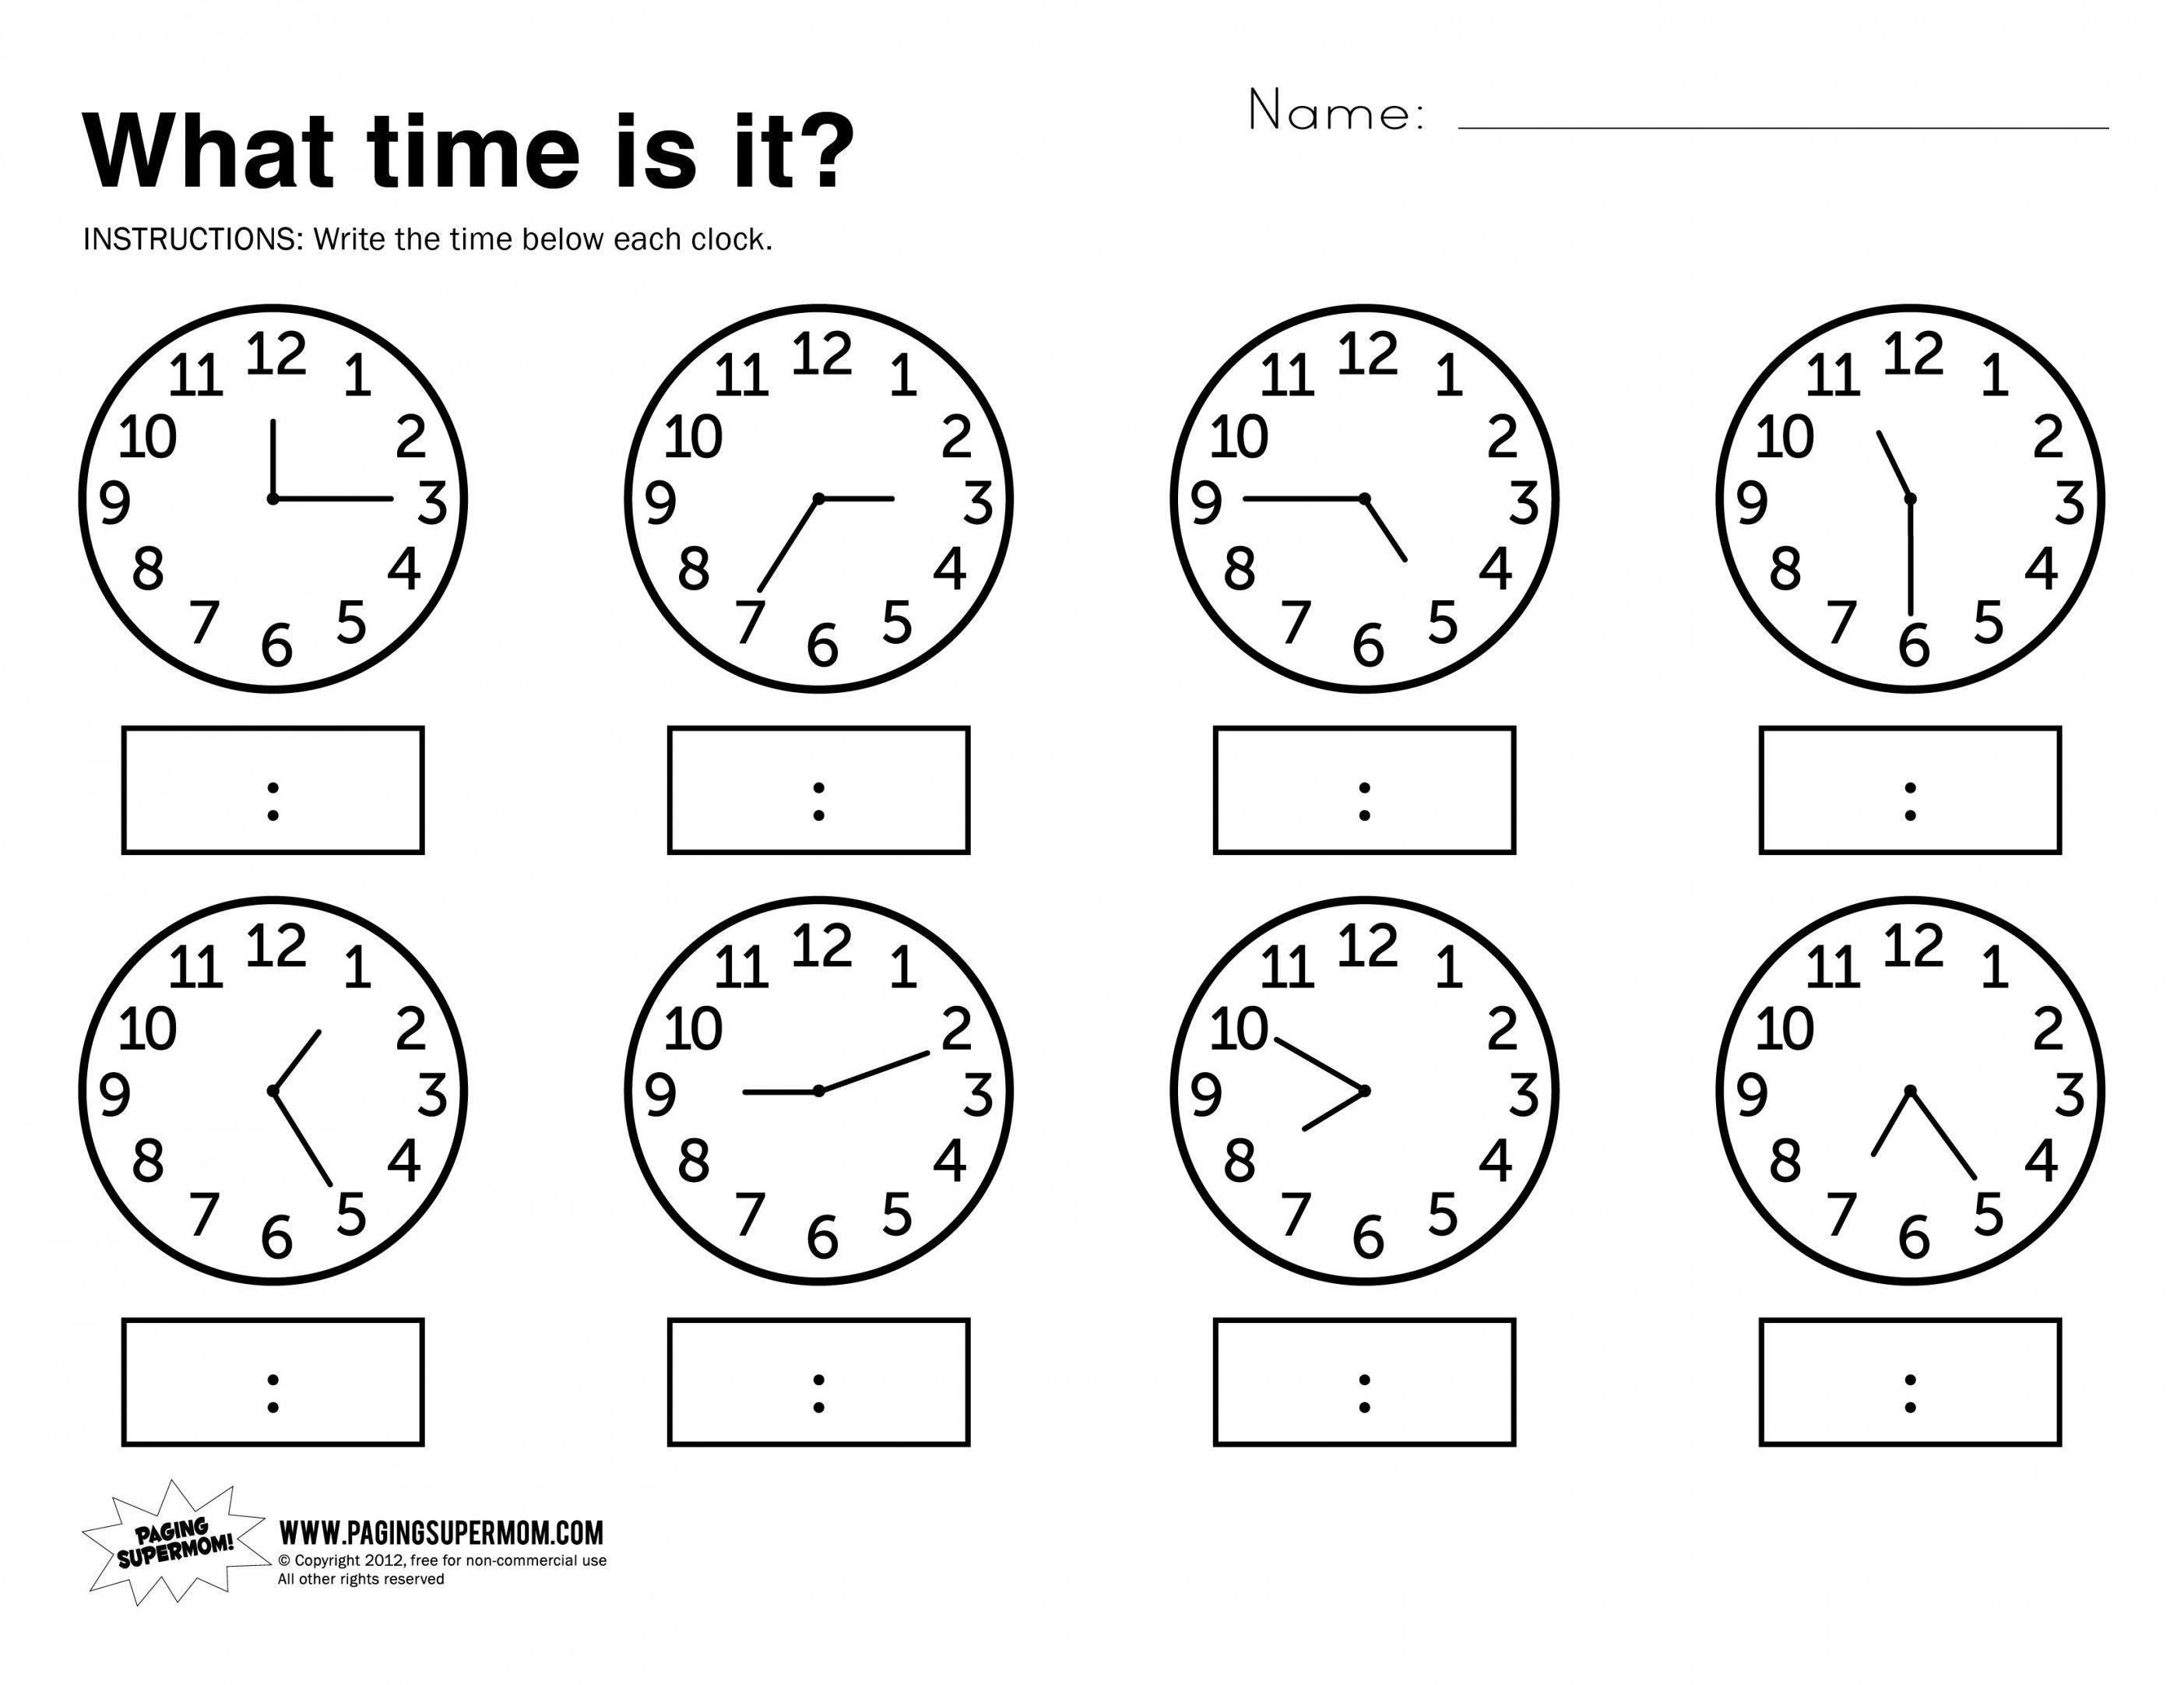 Telling Time Worksheets Grade 3 | Lostranquillos - Free Printable | Free Printable Elapsed Time Worksheets For Grade 3